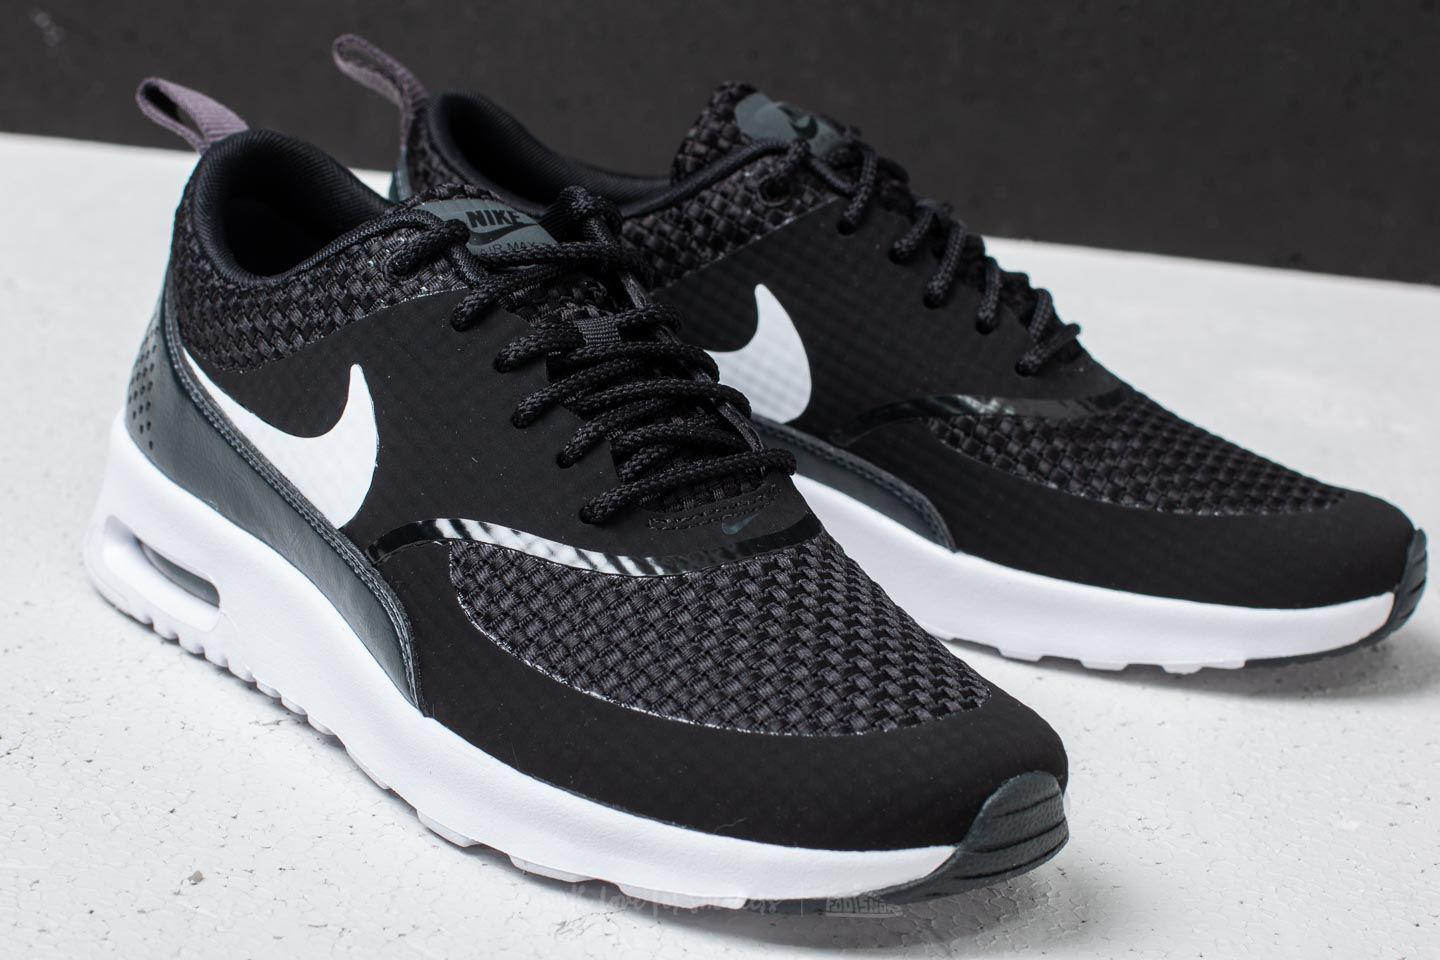 Women's Wmns Air Max Thea Premium Black White anthracite